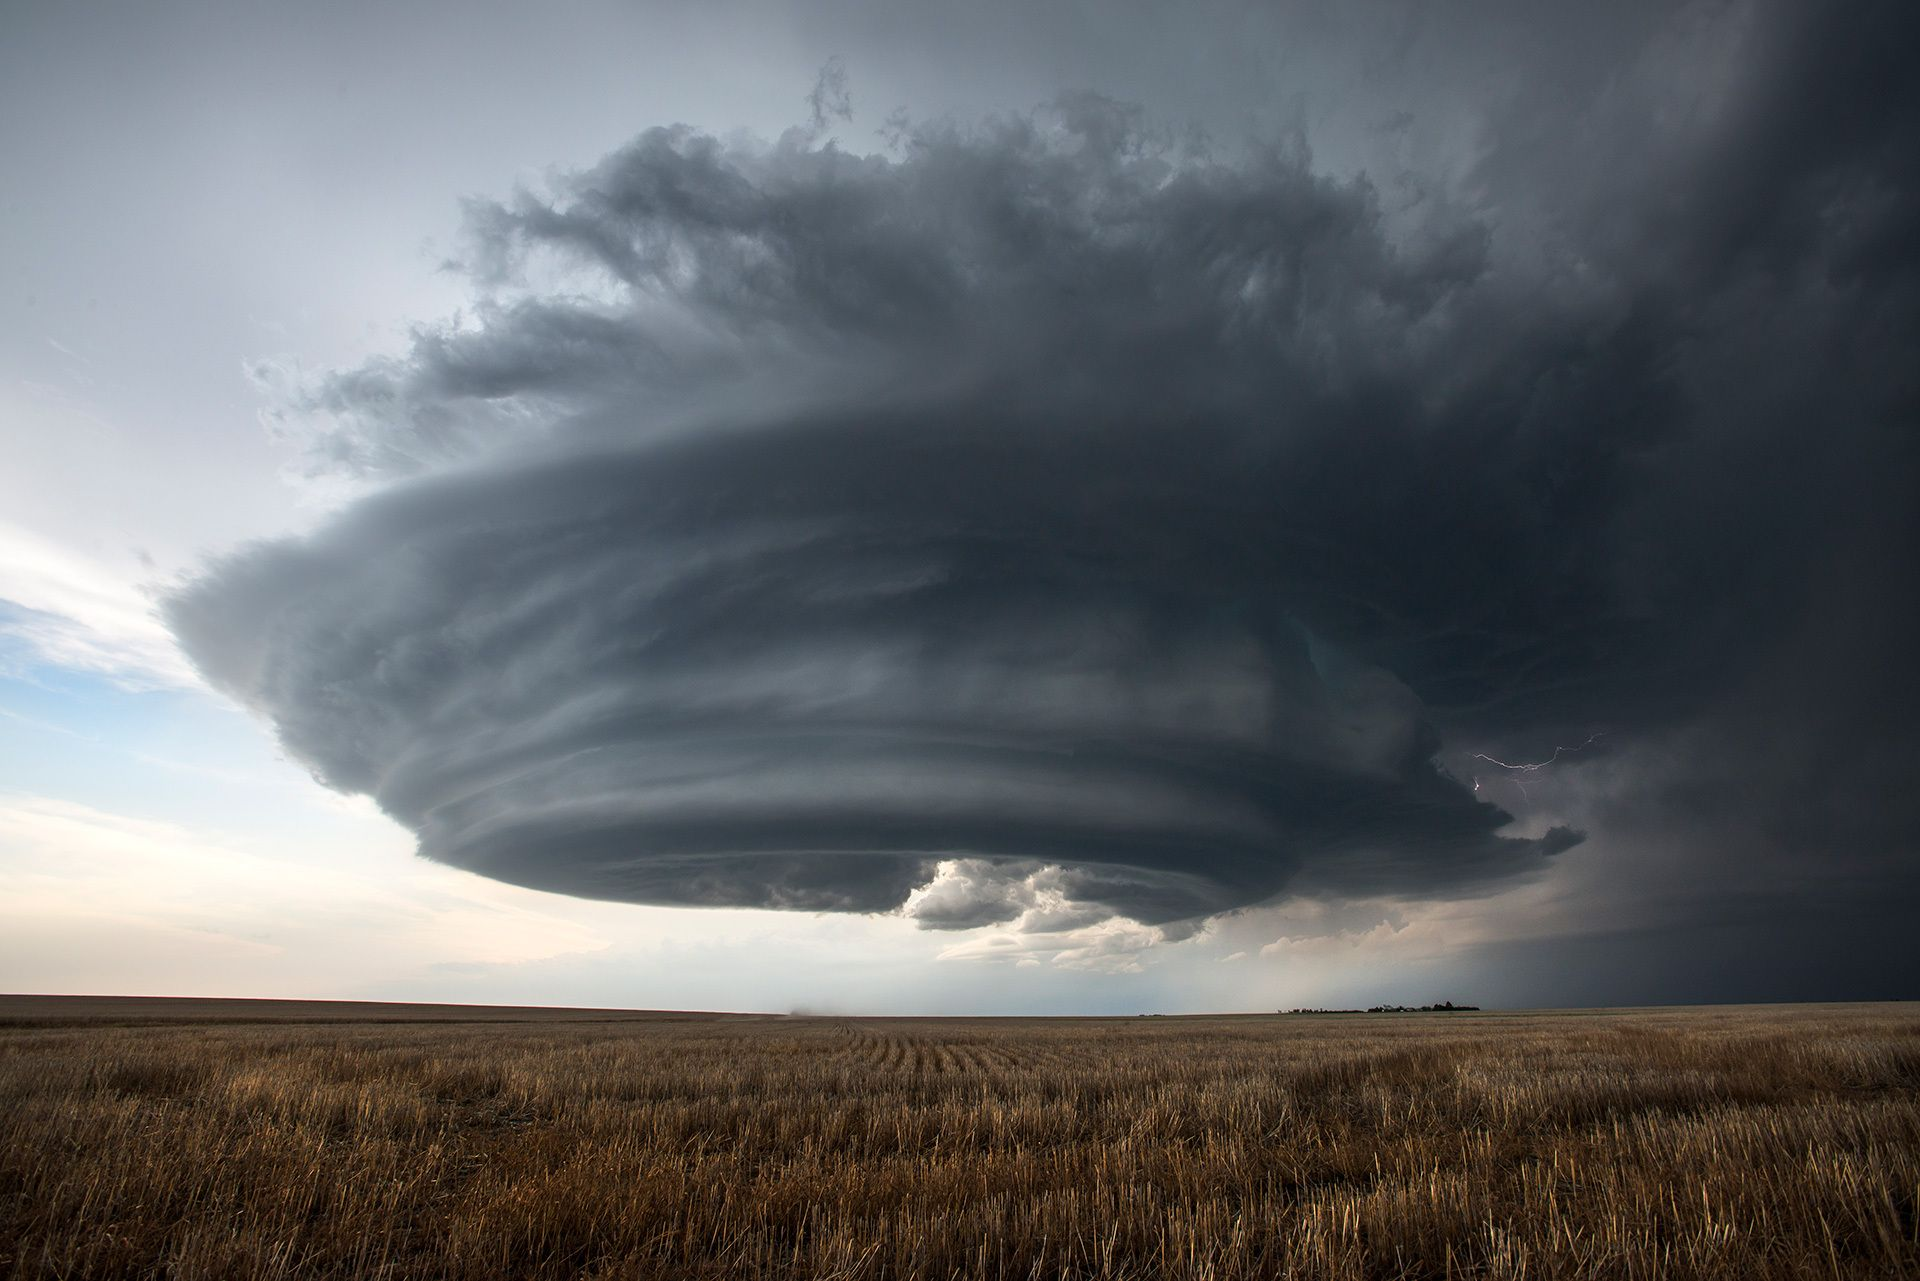 Weather I cmredwine cameron redwine tornado supercell photograhy weather colorado 2013